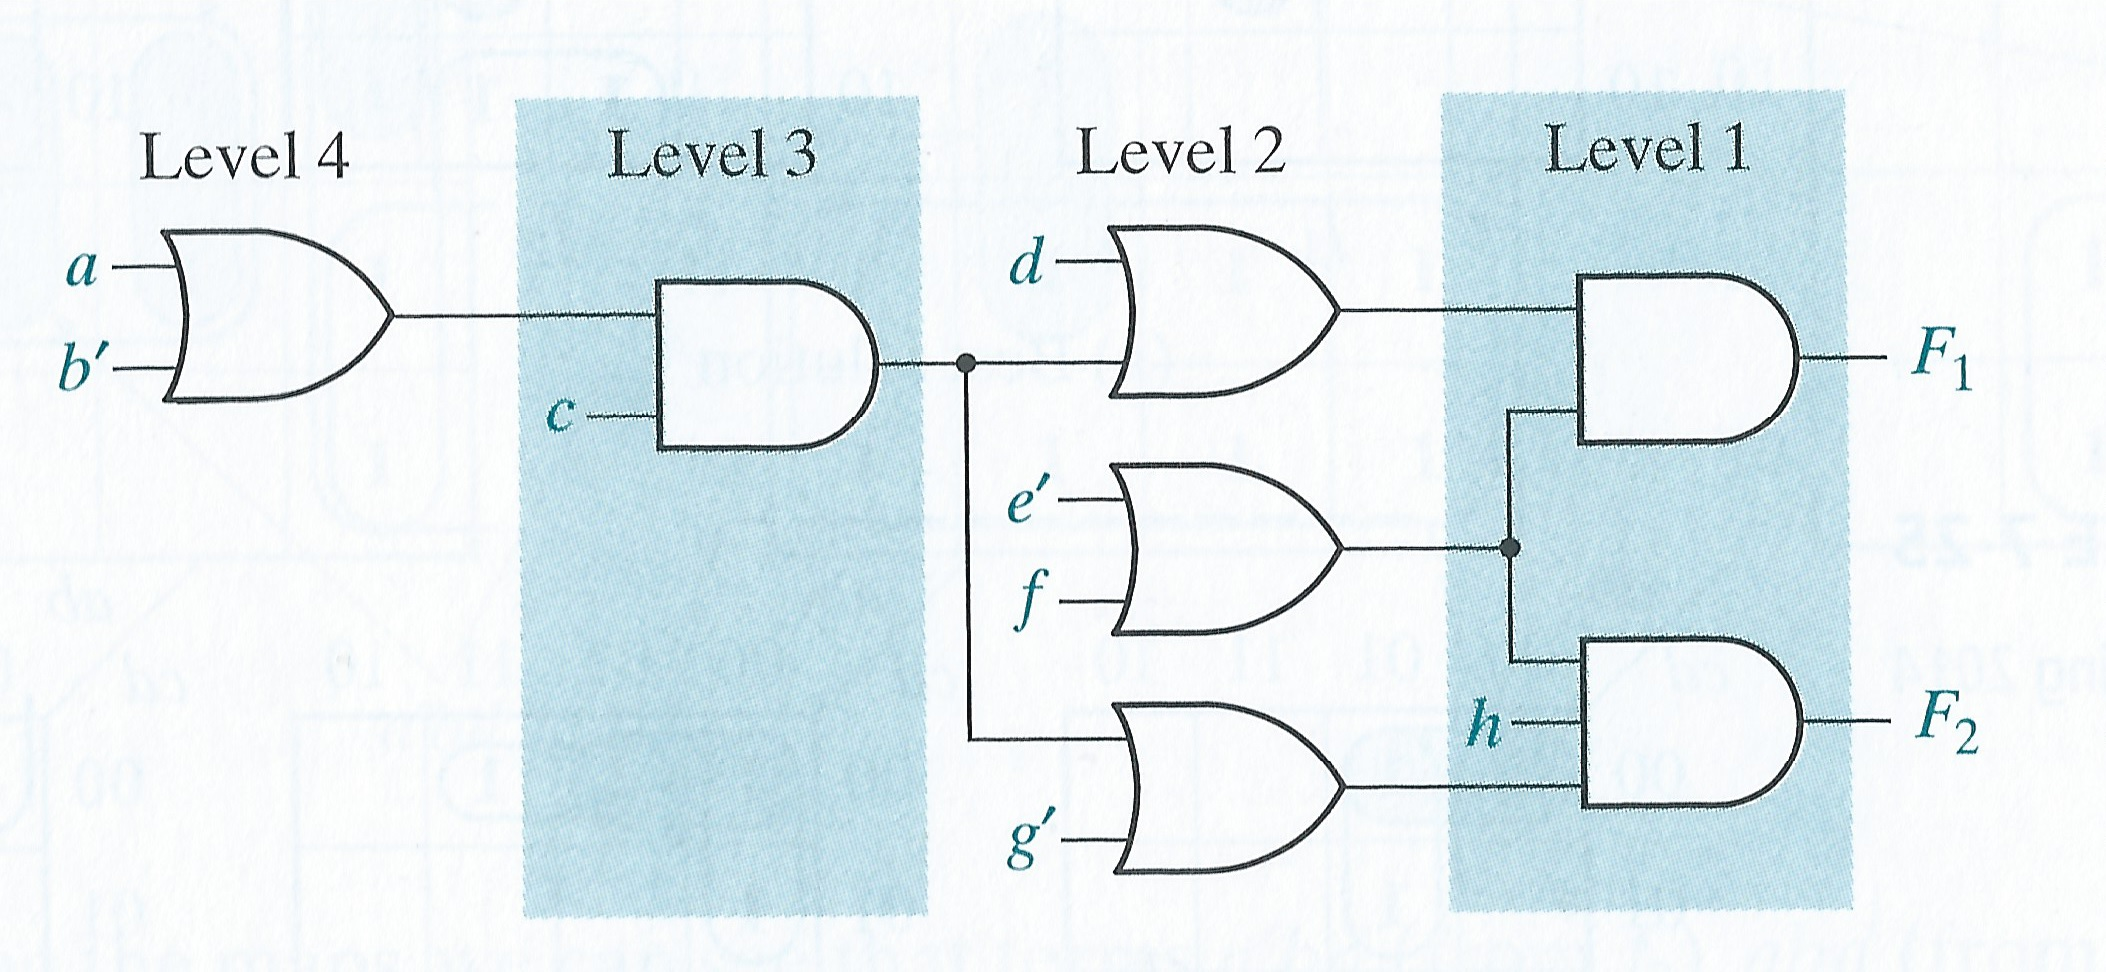 Design A Logic Circuit That Has A 4-bit Binary Num... | Chegg.com